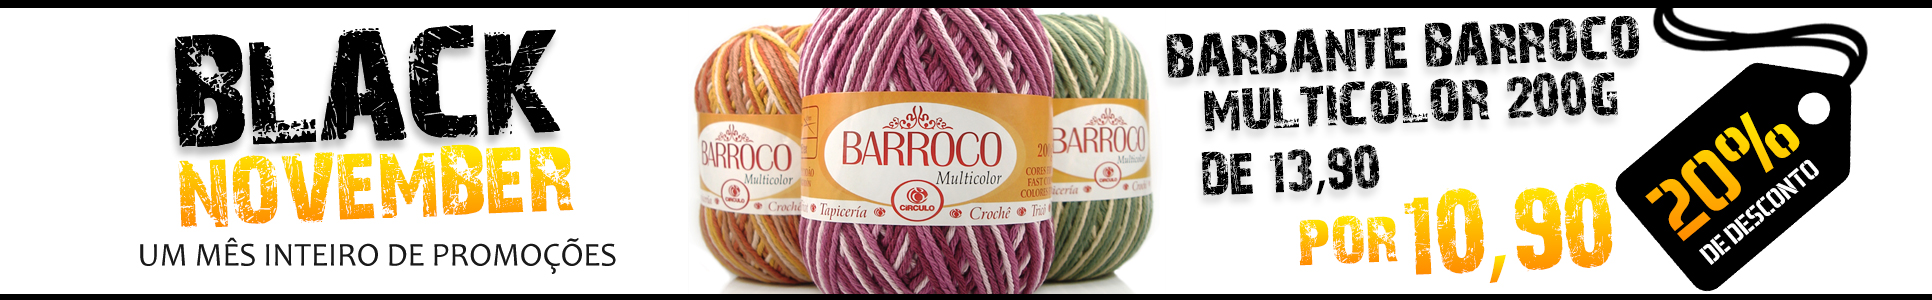 Black November Barbante Barroco Multicolor 200g